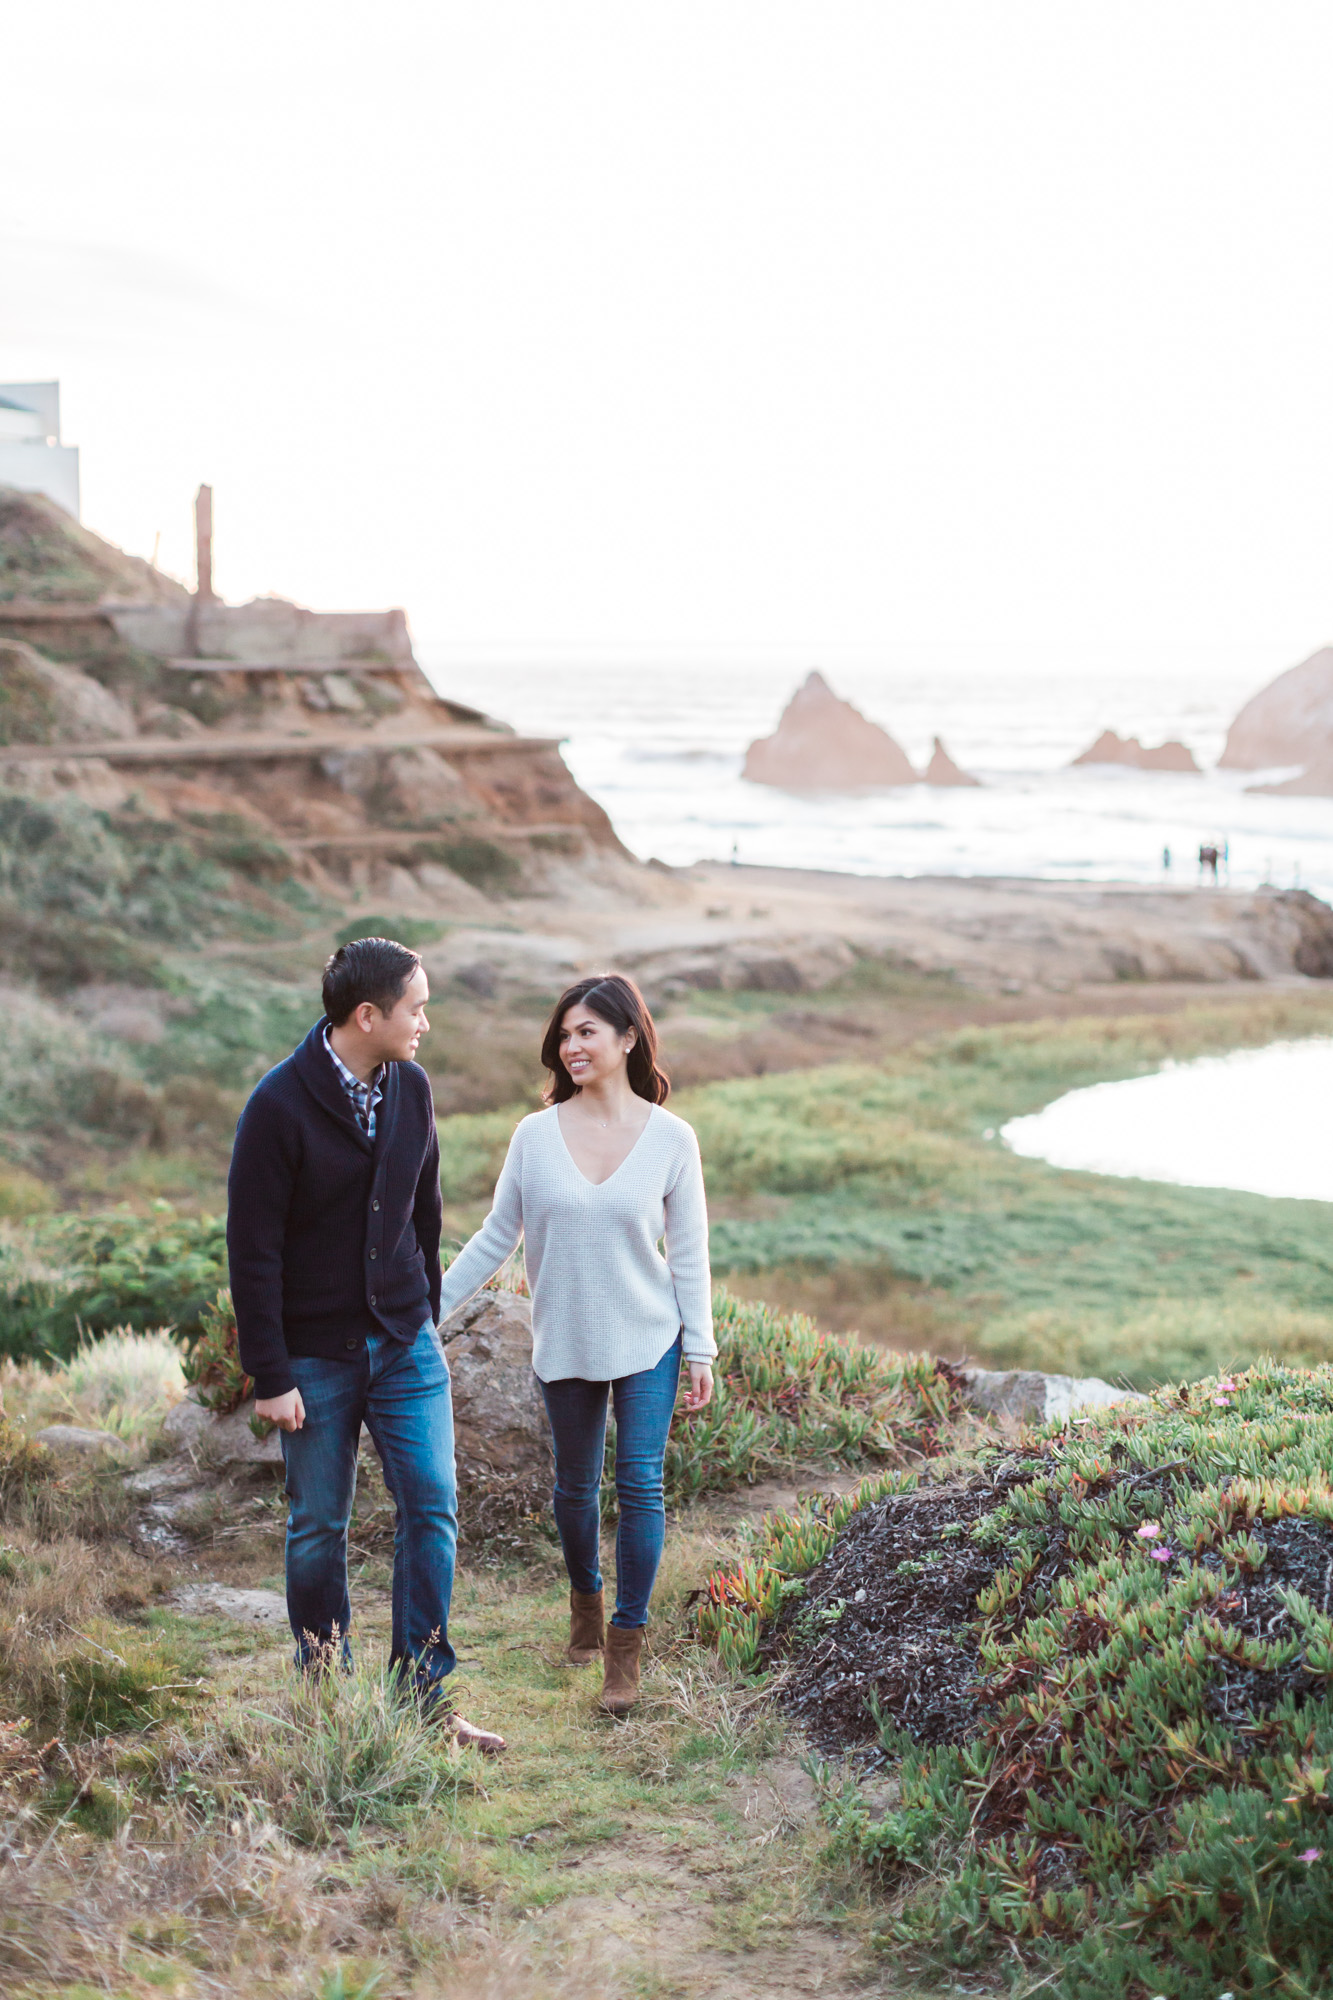 joeewong-jaal-california-san-francisco-engagement-07